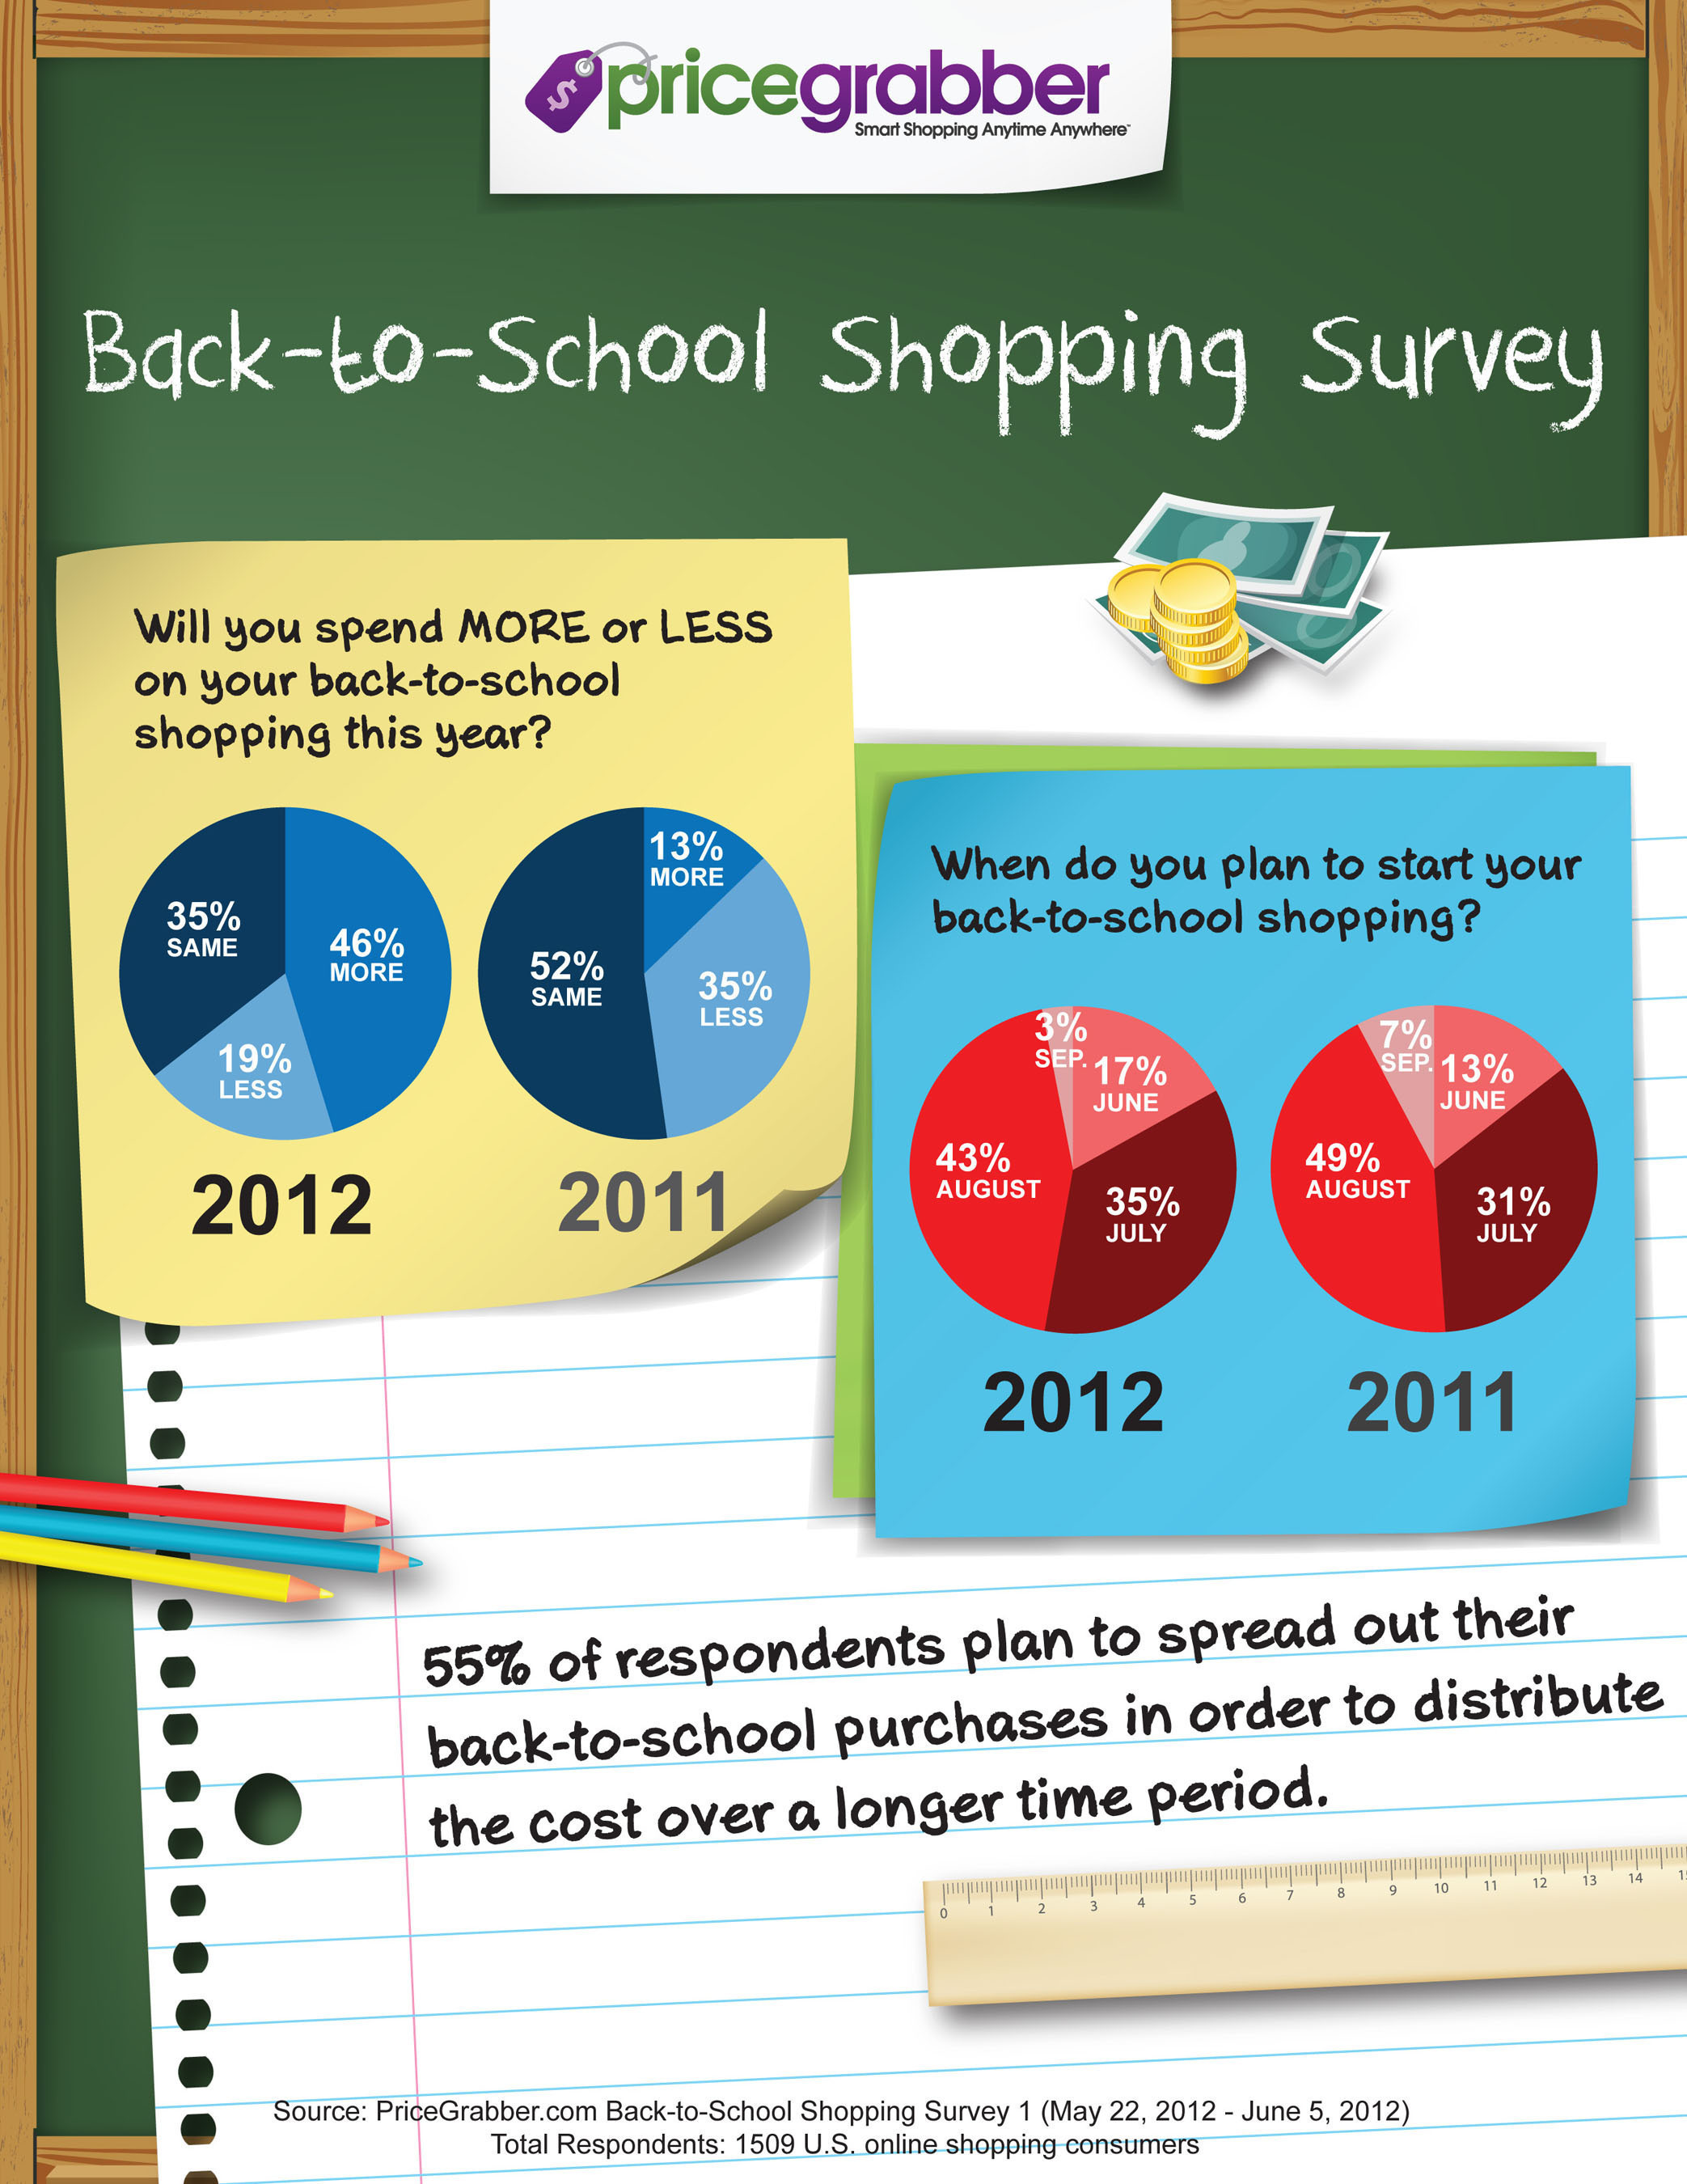 Many consumers plan to spend more on back-to-school shopping in 2012 than in 2011, according to